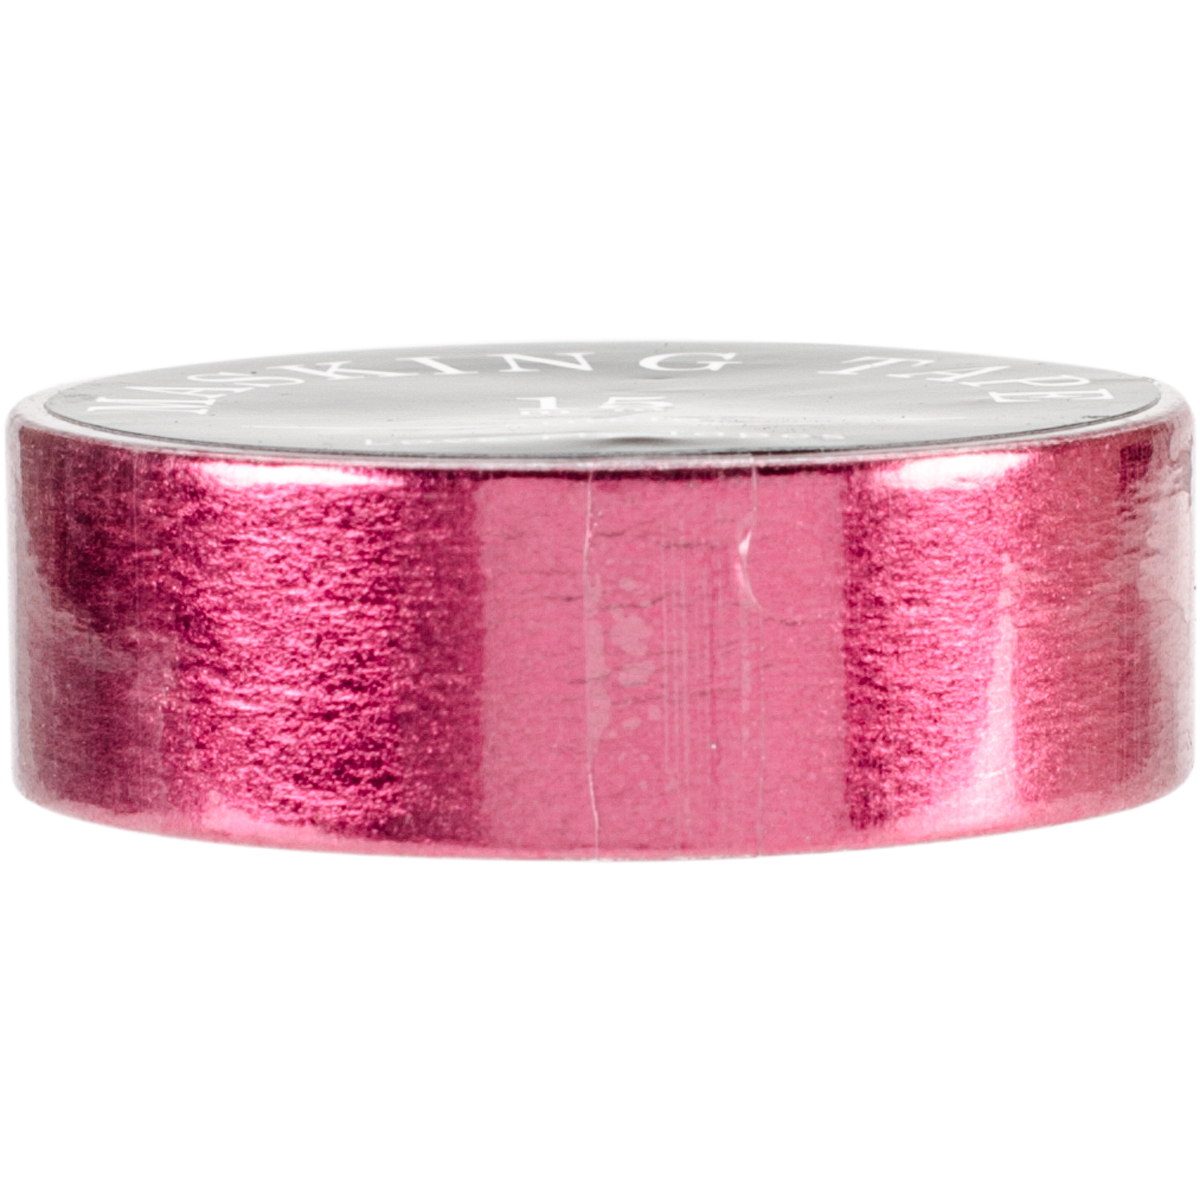 Love My Tapes Foil Washi Tape 15mmx10m-Red